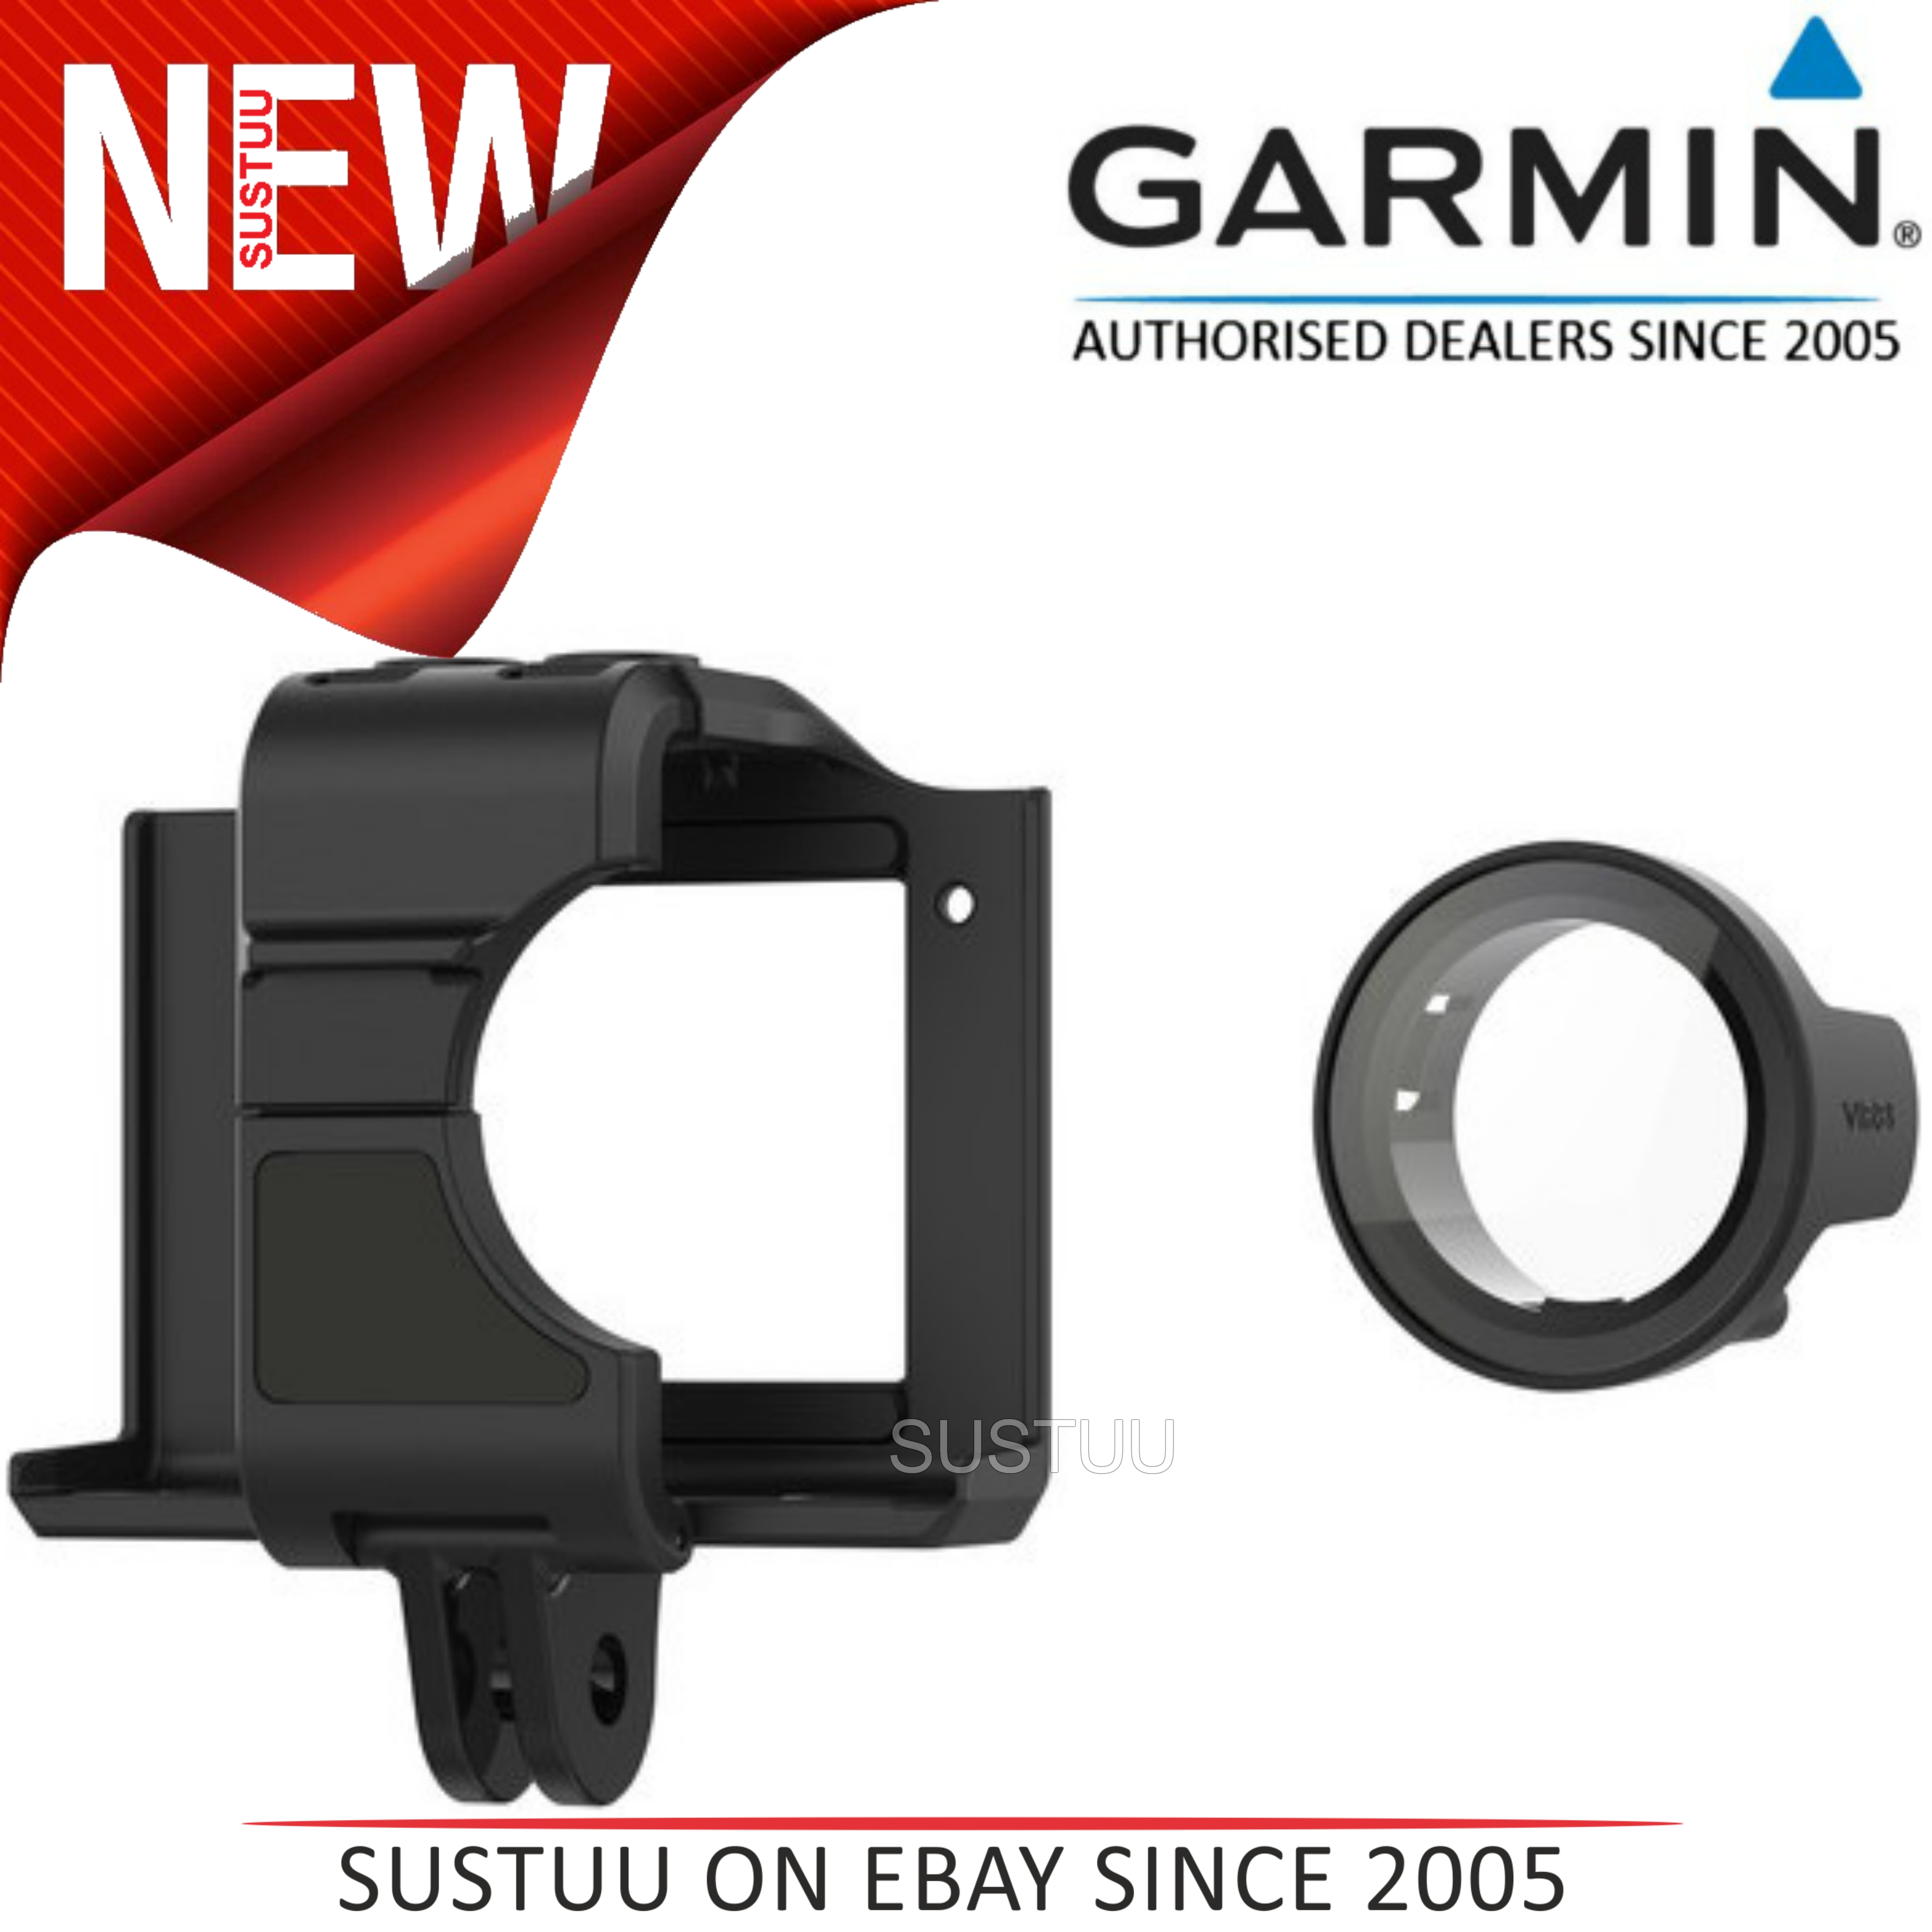 Garmin 010-12389-12?Cage Mount with Protective Lens?For VIRB Ultra 30 Camera NEW